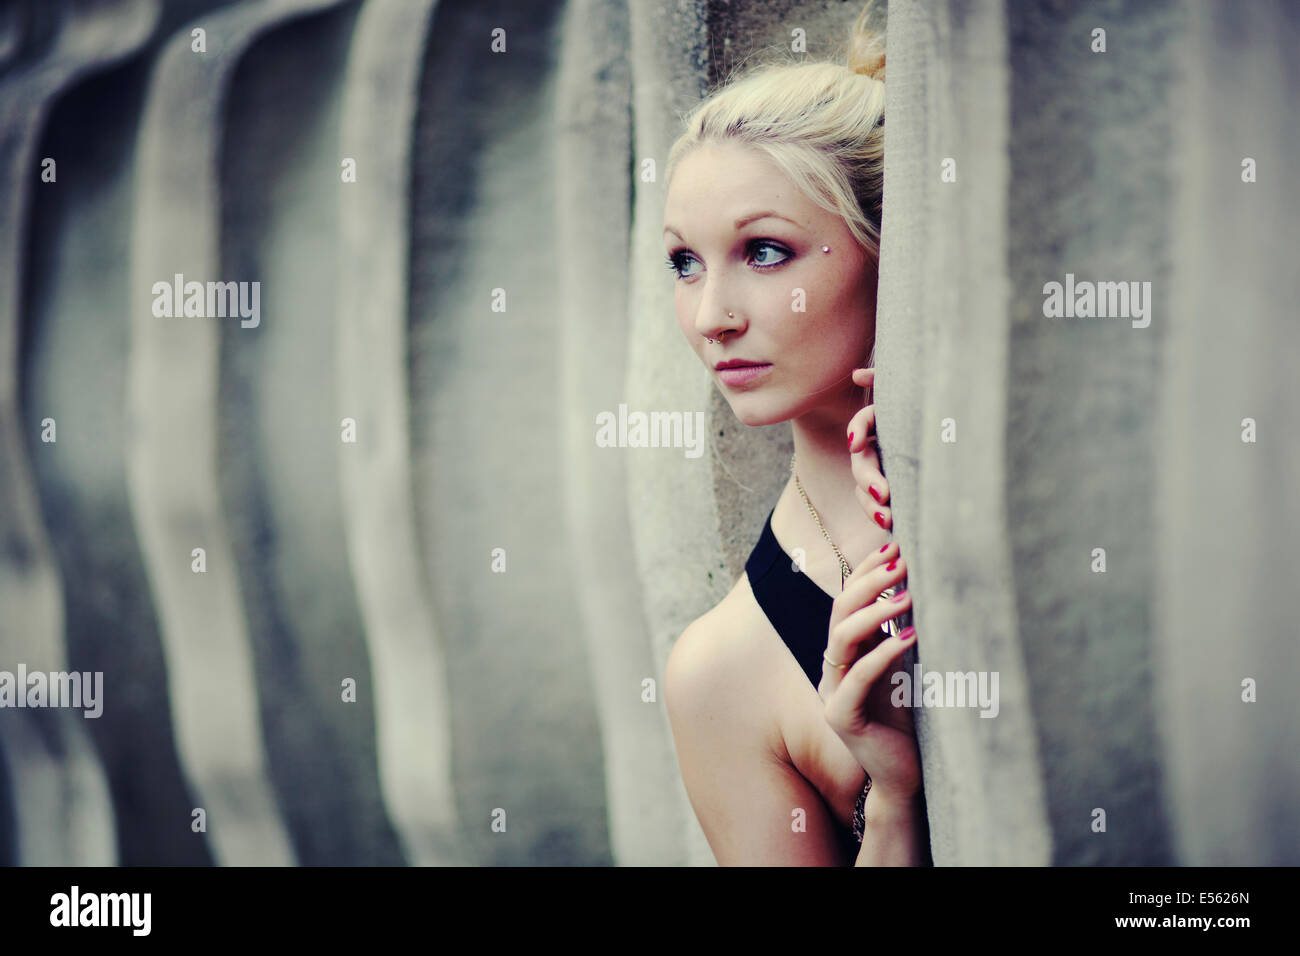 Portrait of a young woman Photo Stock